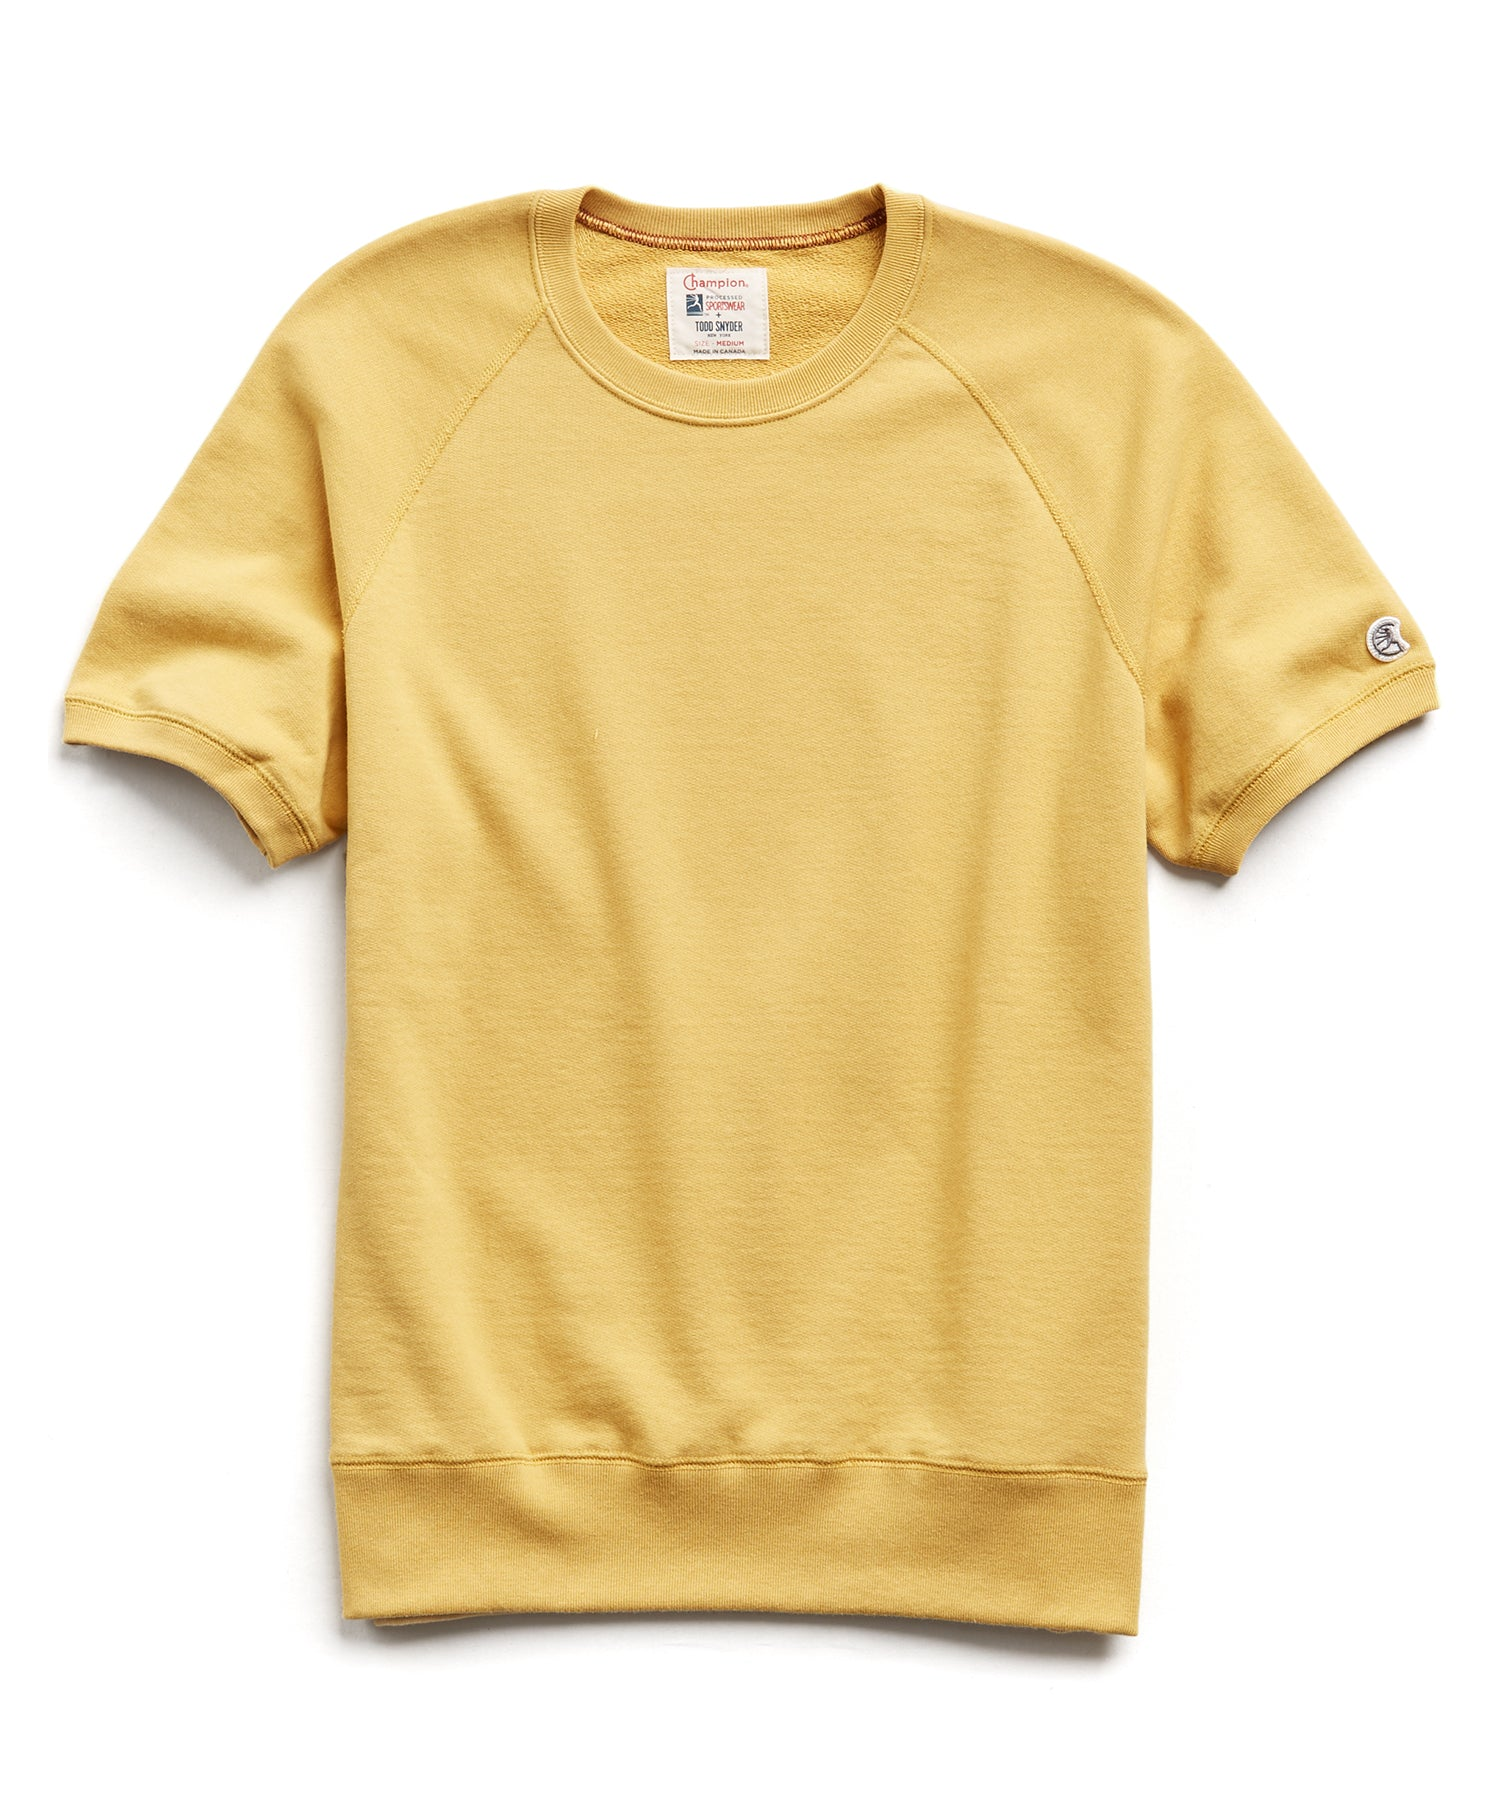 Terry Short Sleeve Sweatshirt in Goldenrod